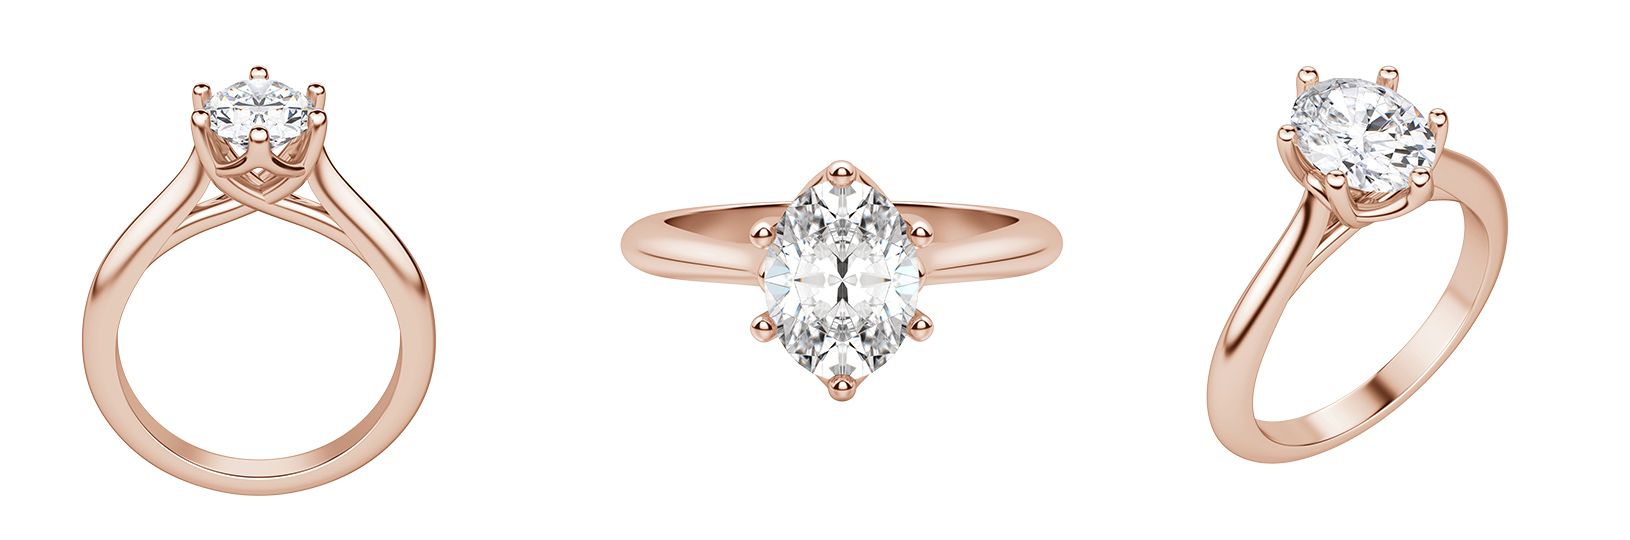 Trellis set engagement ring